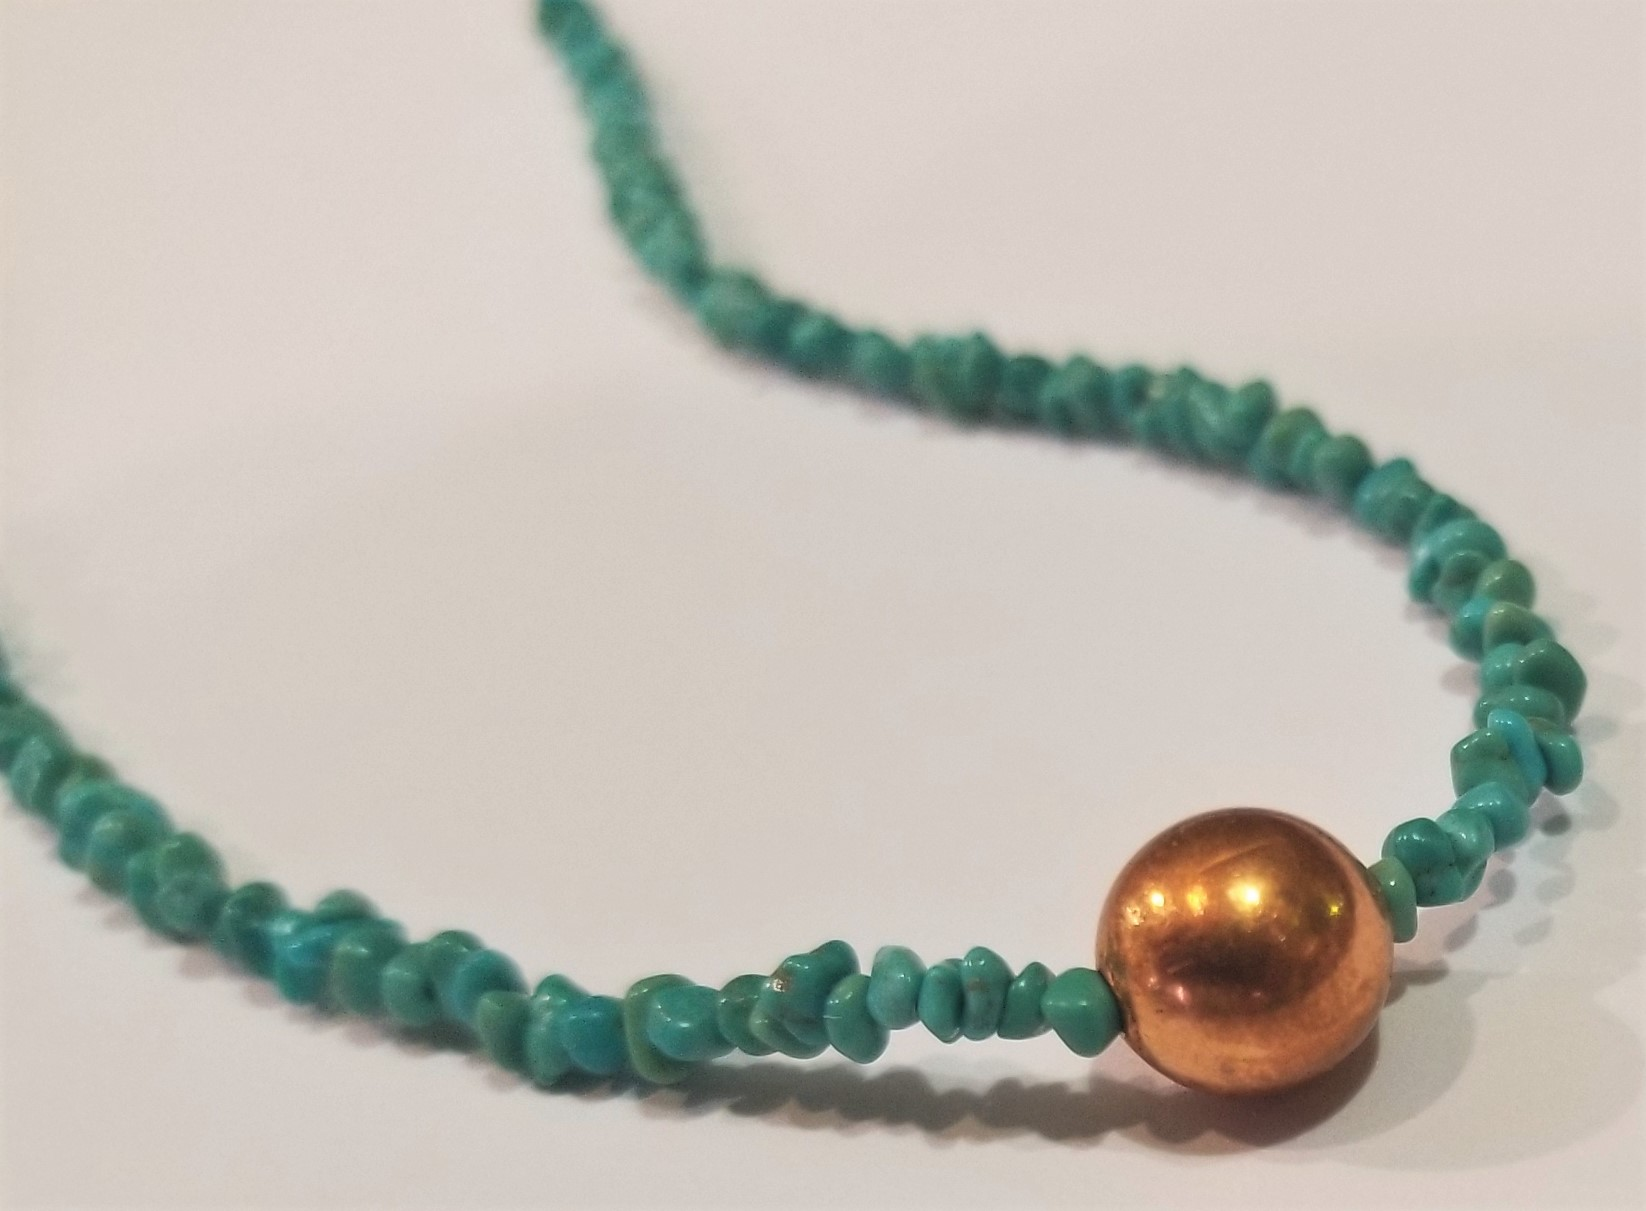 Turquoise and Copper Necklace, by Gary Golden